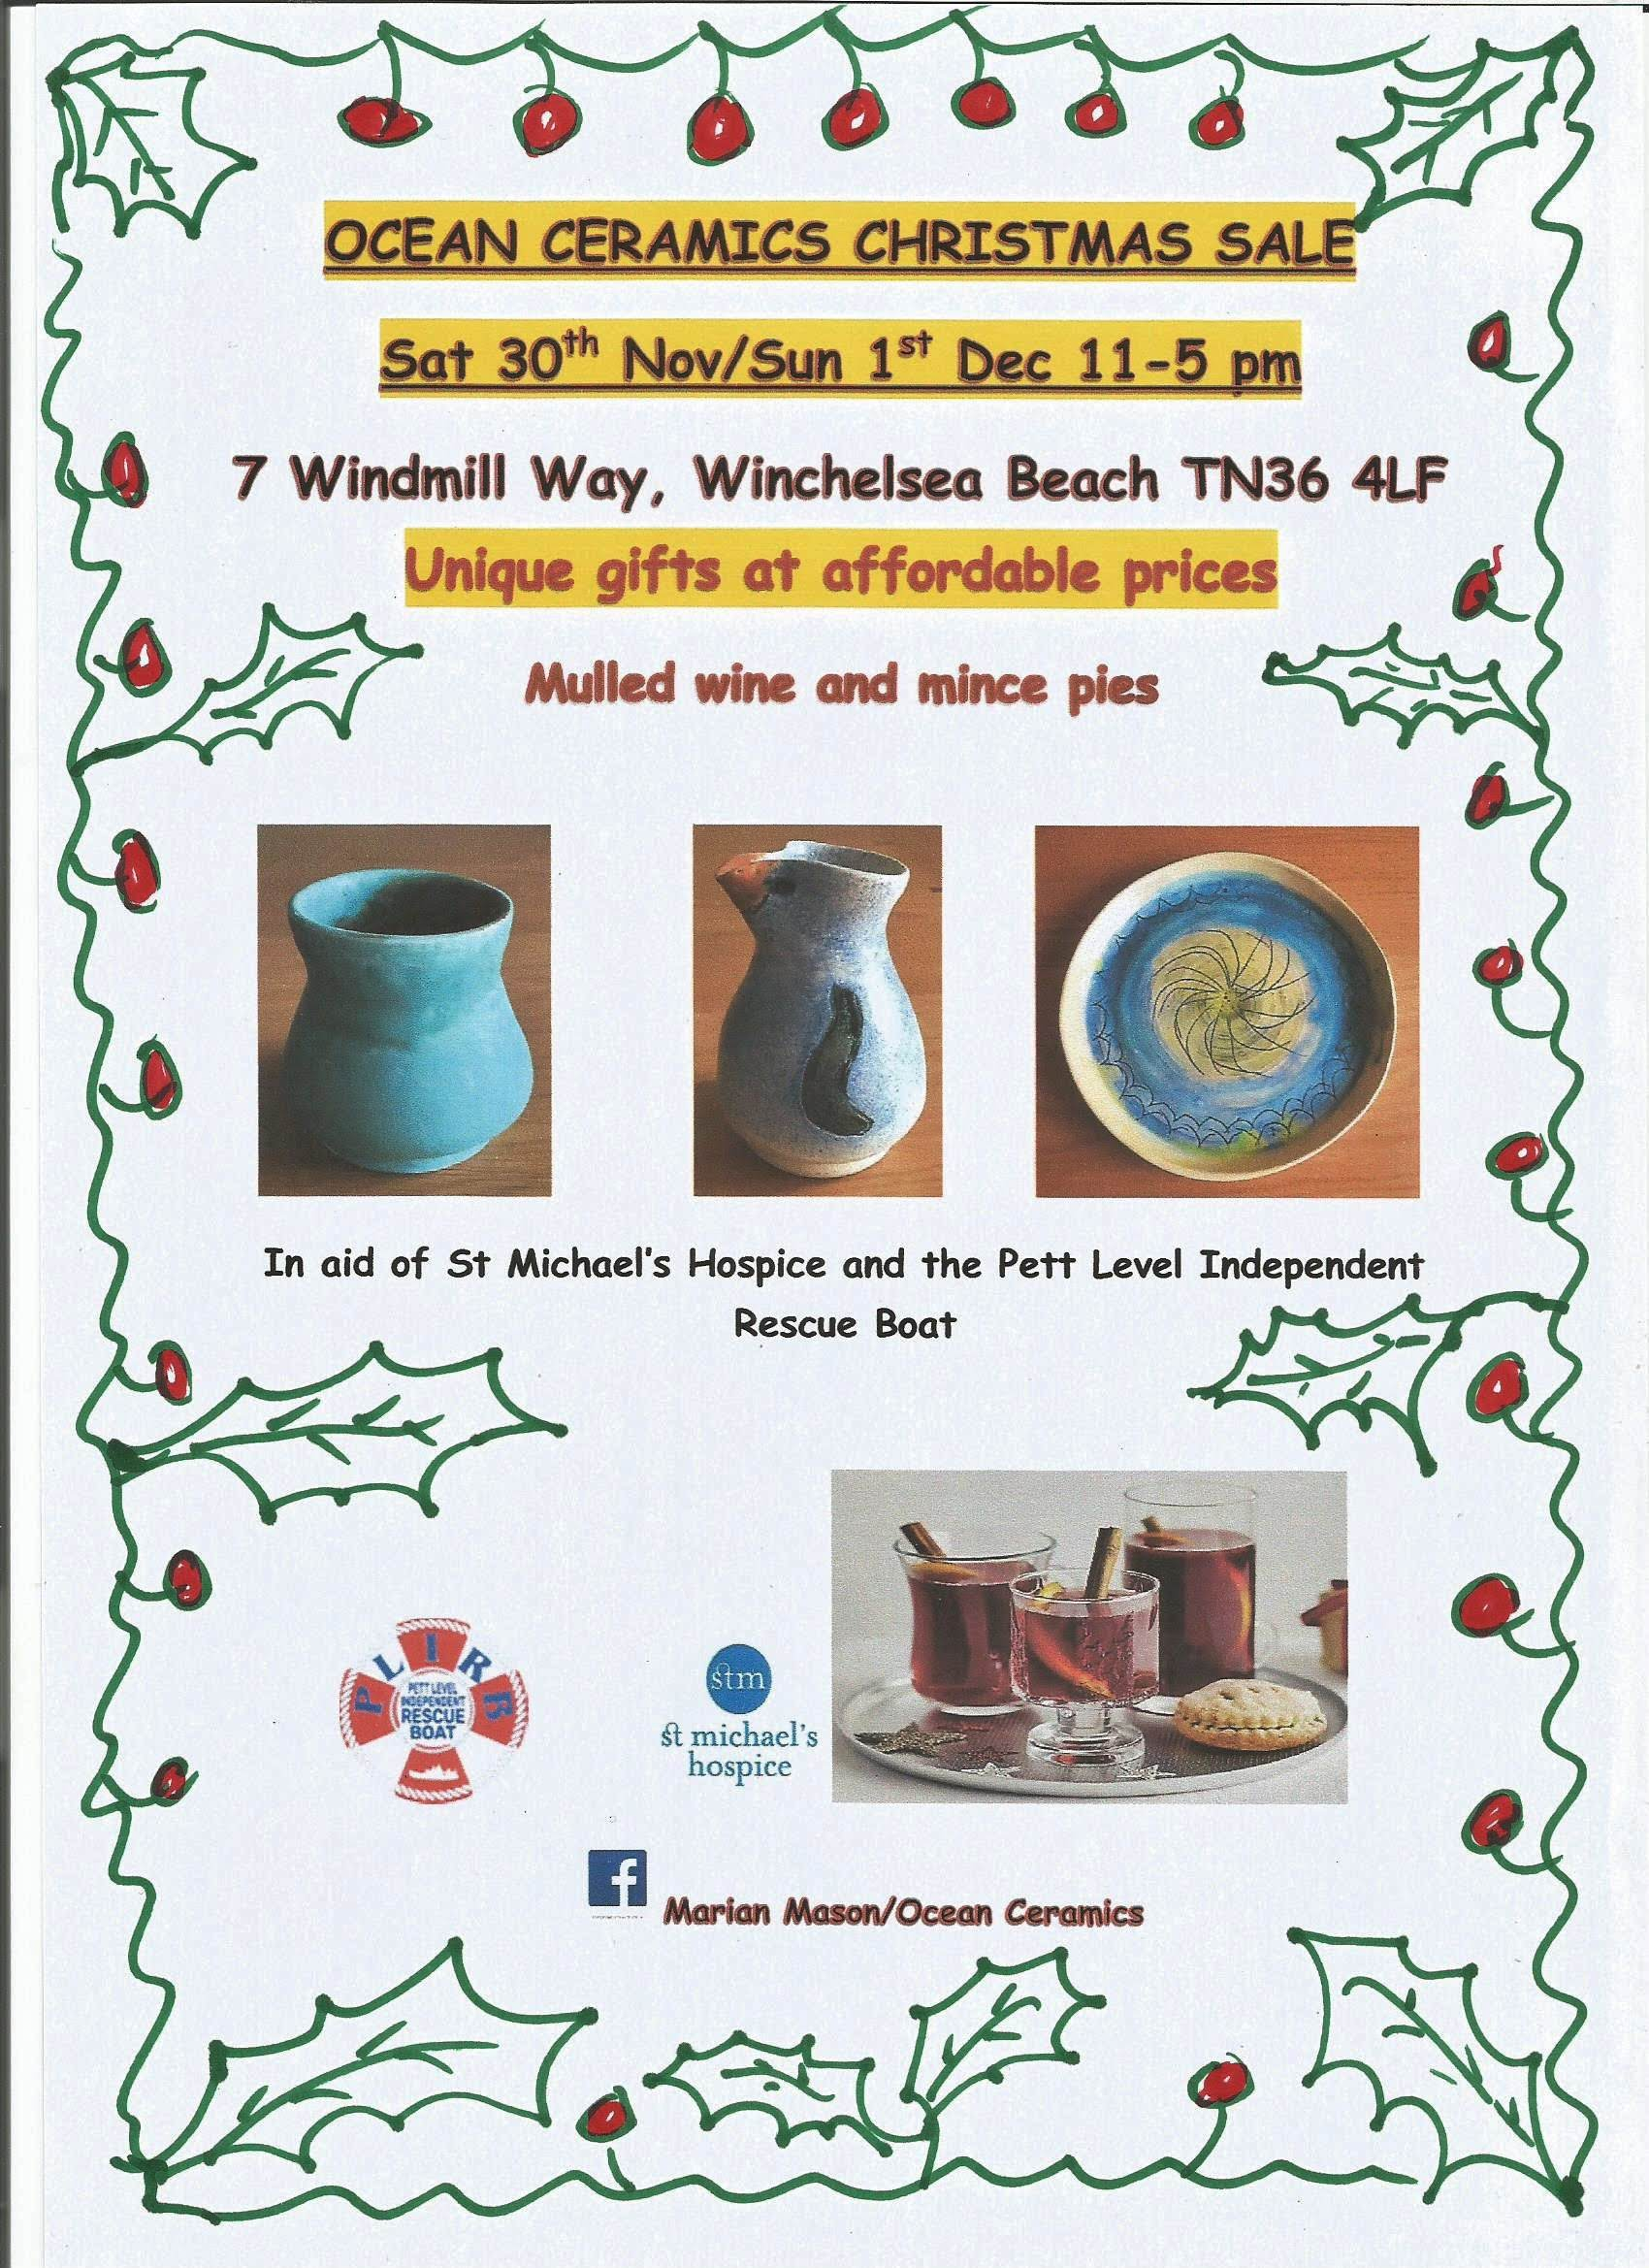 Support from the Community – Ocean Ceramics, Winchelsea Beach